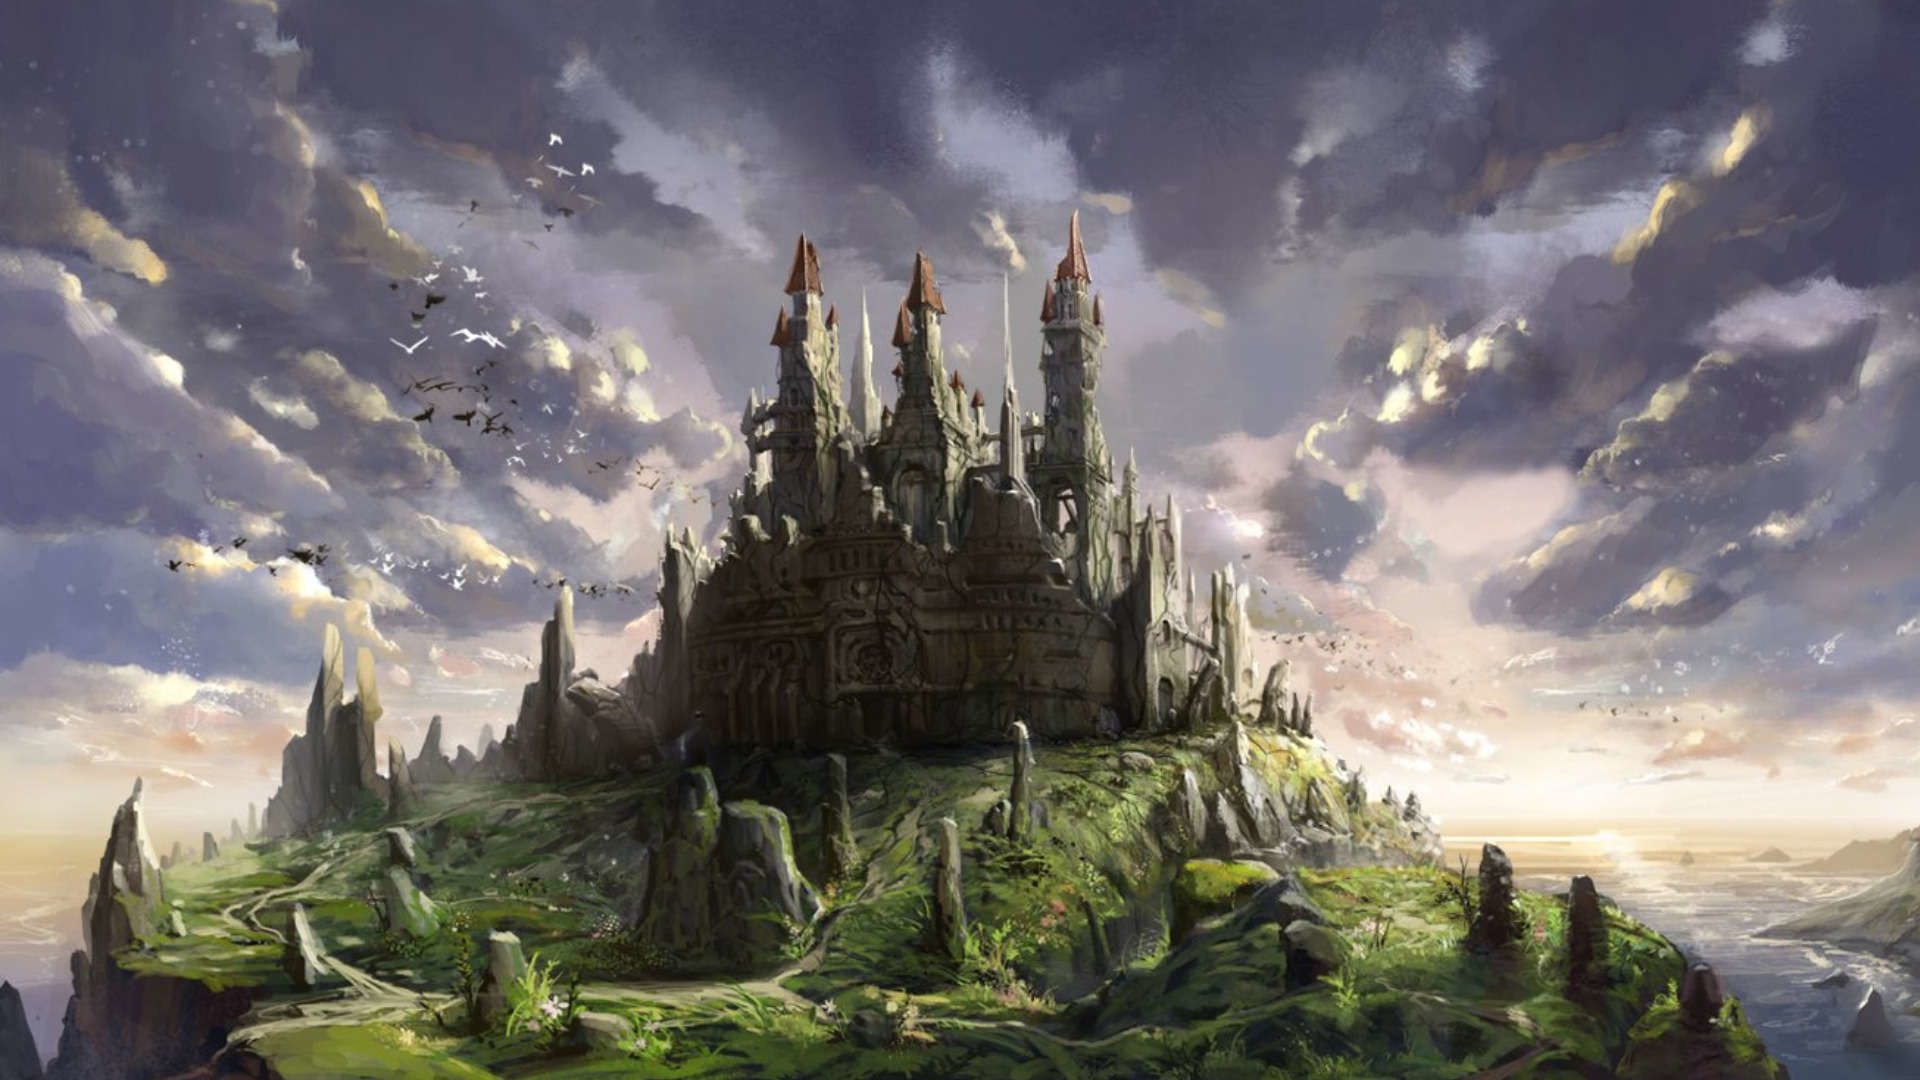 1920x1080 Fantasy Castle 1080p Wallpapers HD Resolution Wallpaper  px 169.85  KB